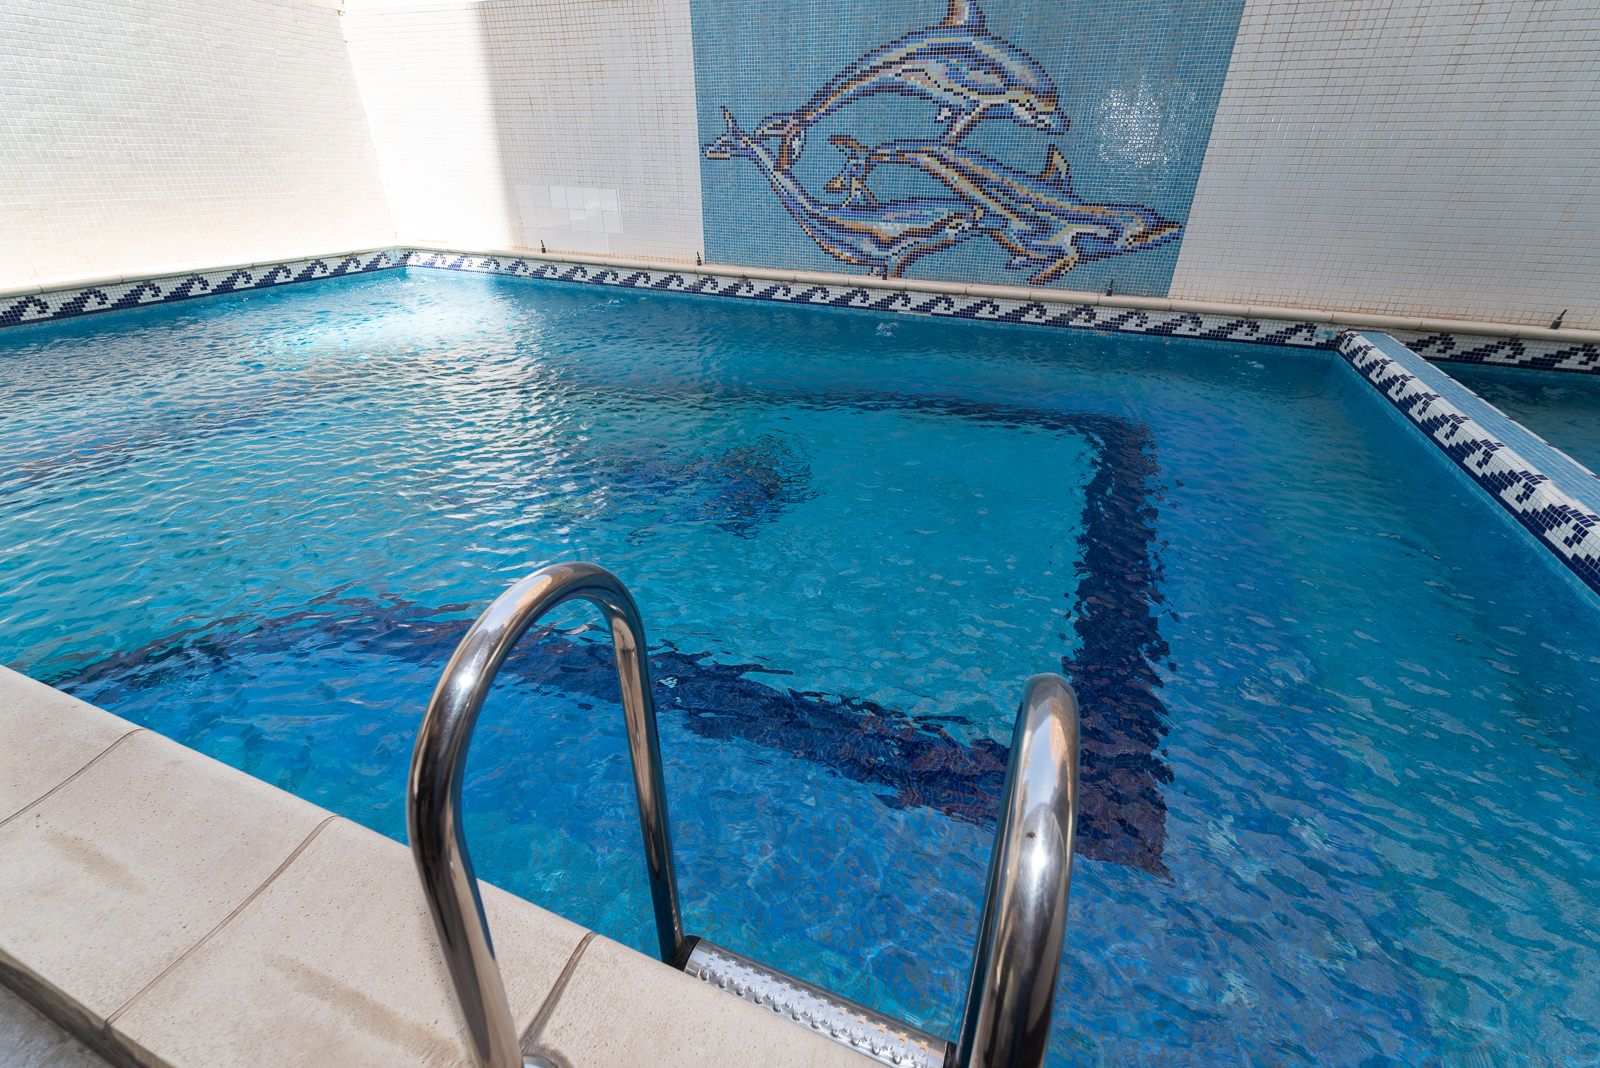 Shaab – unfurnished, two bedroom apartment w/pool